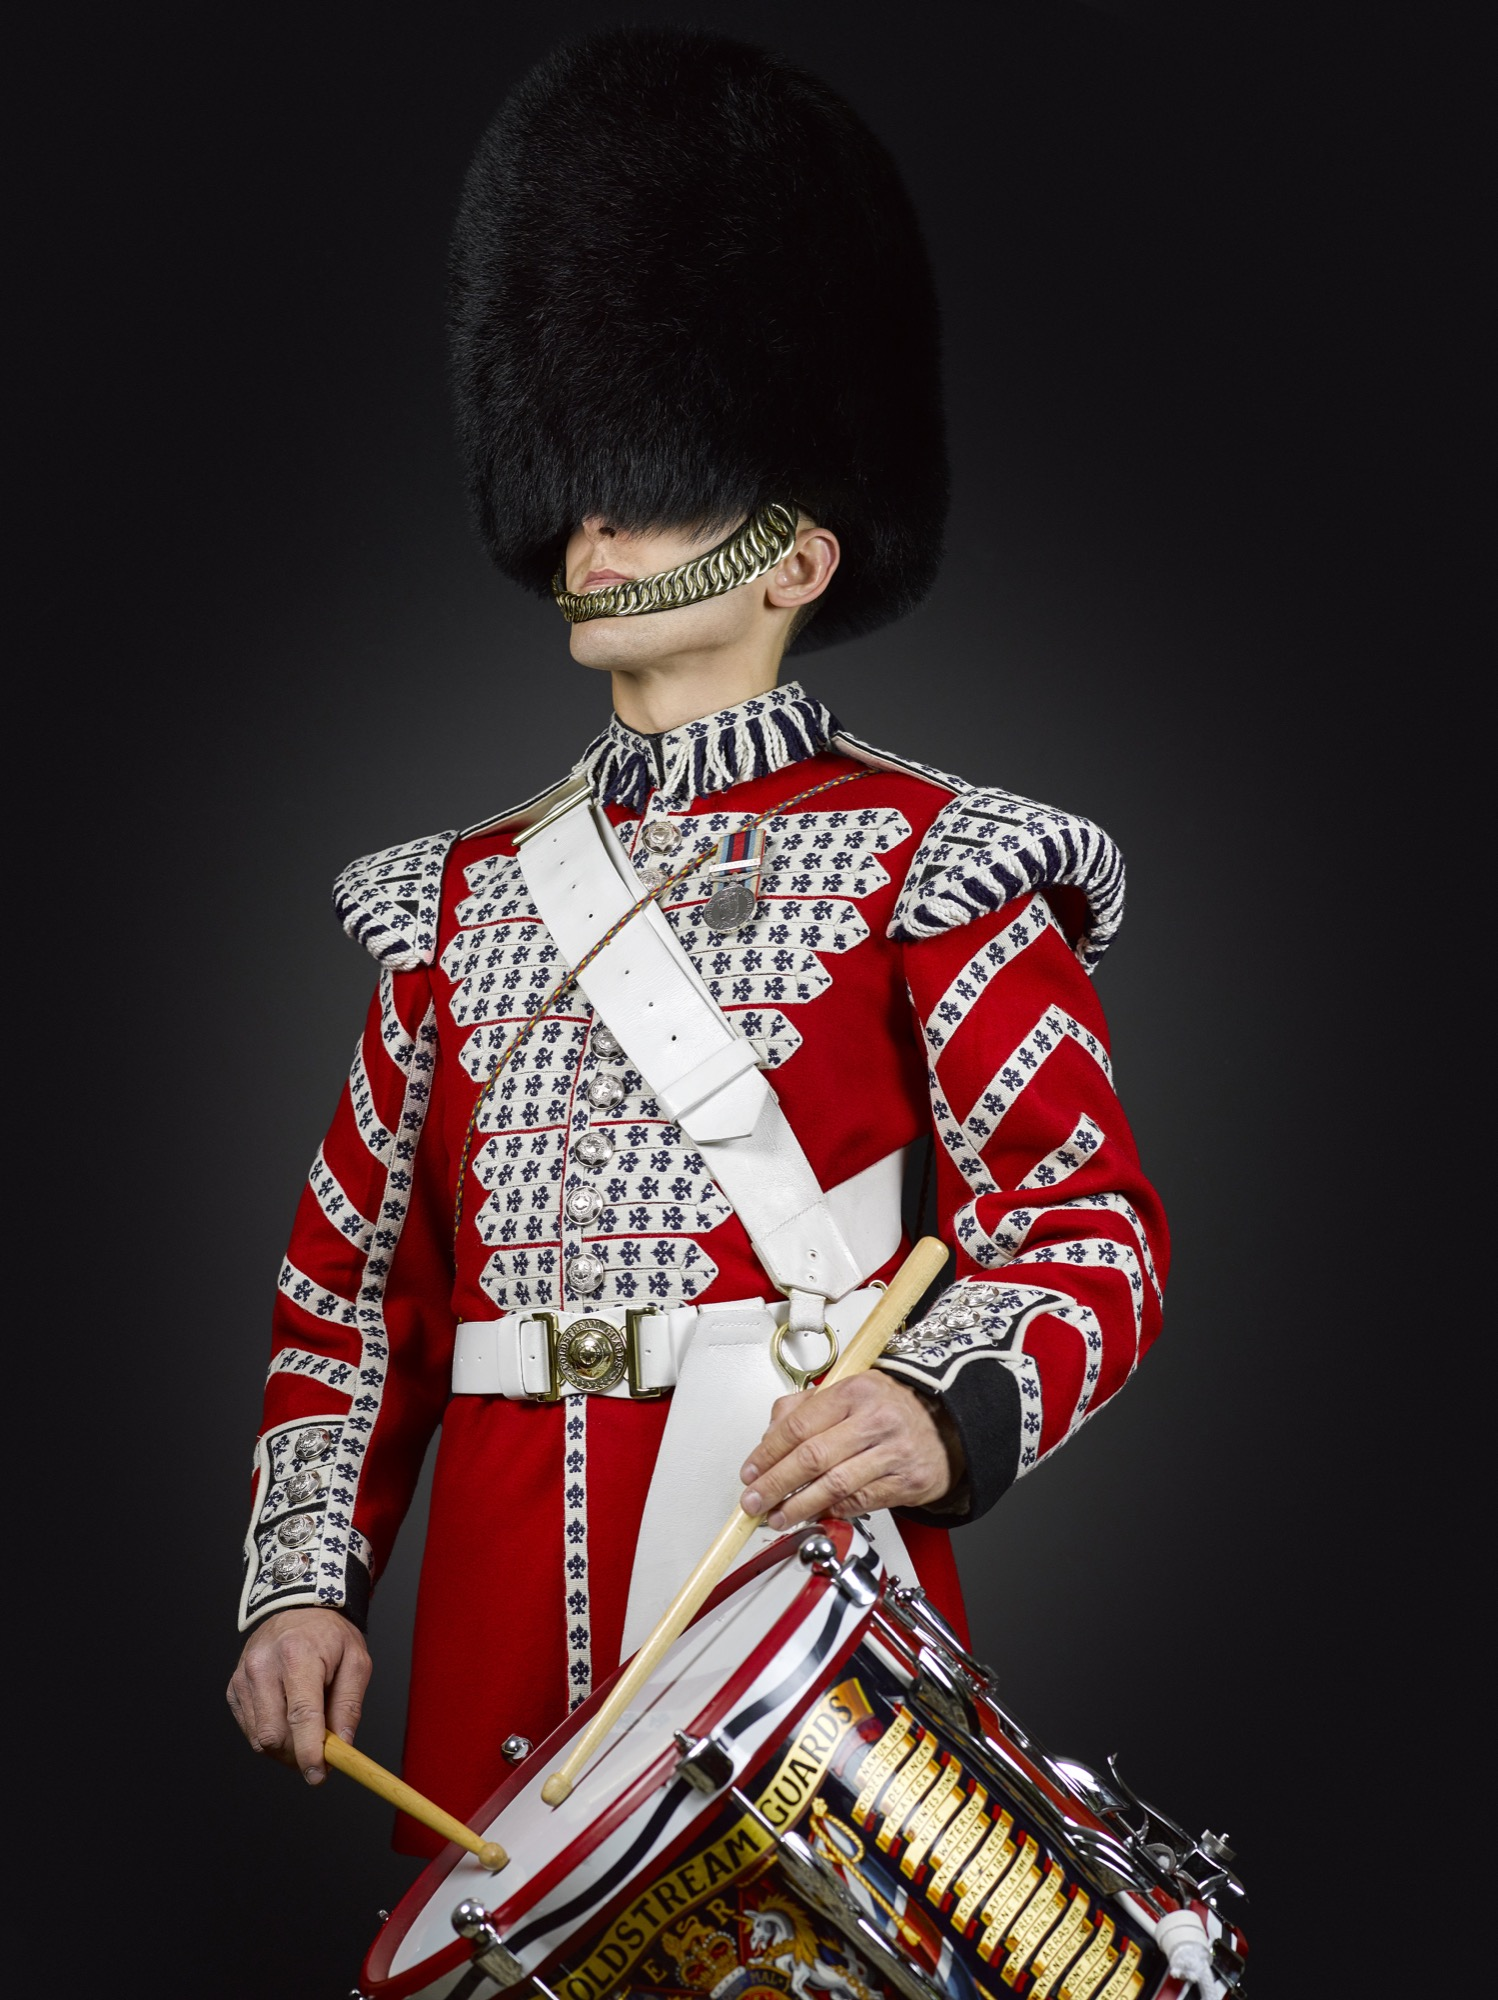 Drummer Steele (1st Battalion The Coldstream Guards)